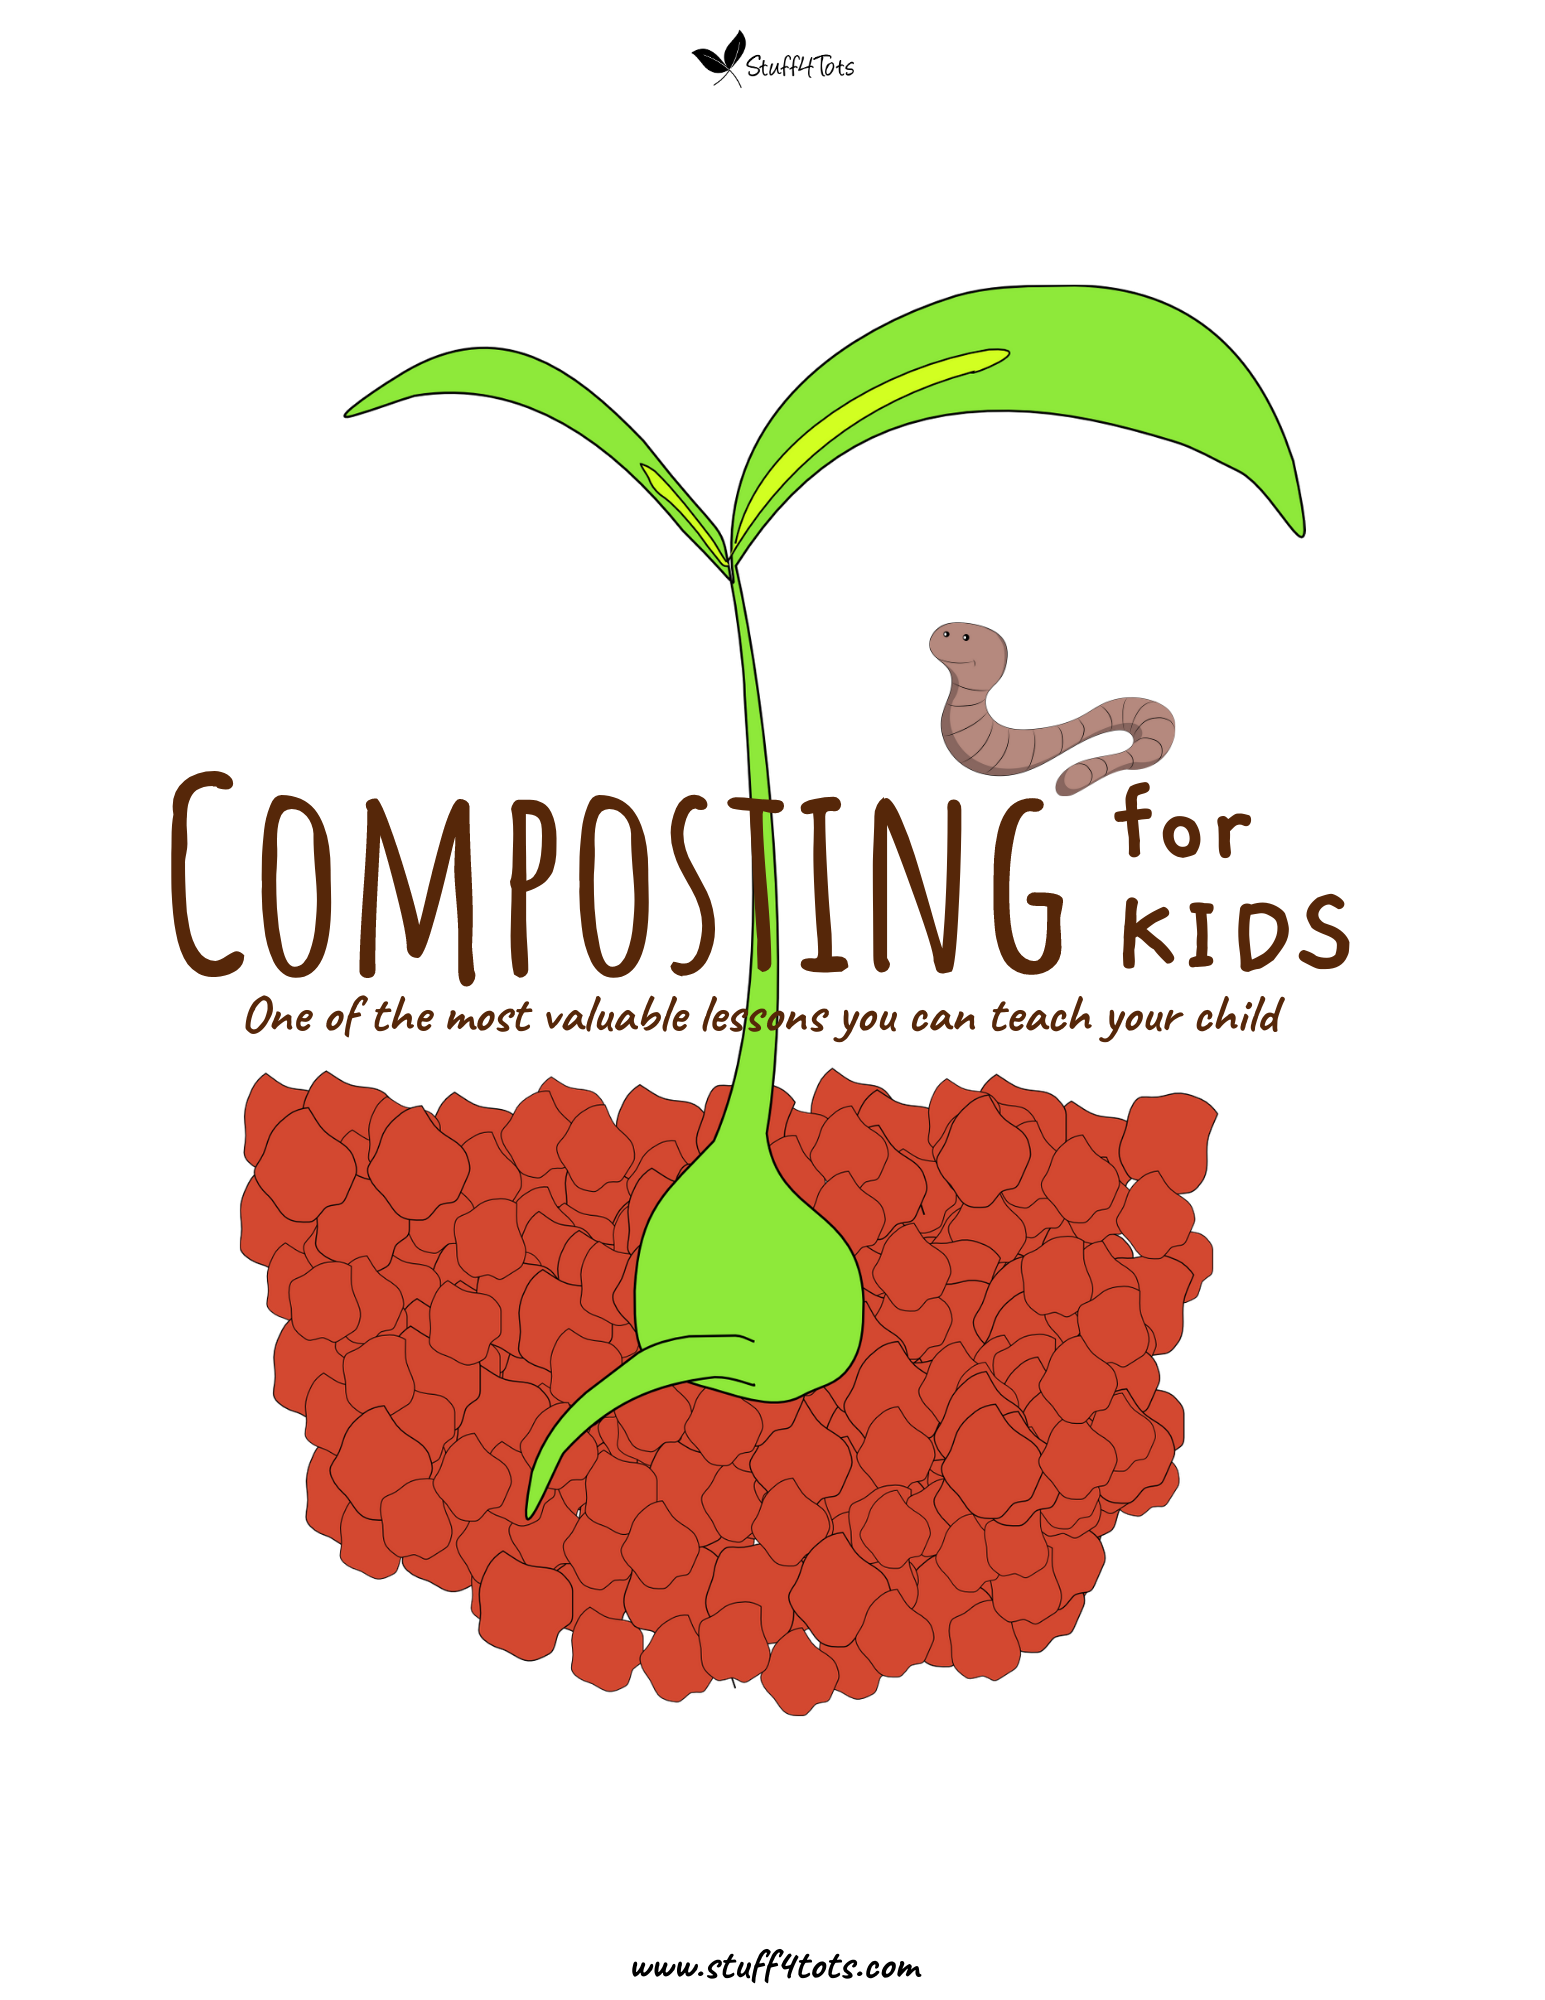 Composting for Kids activity book